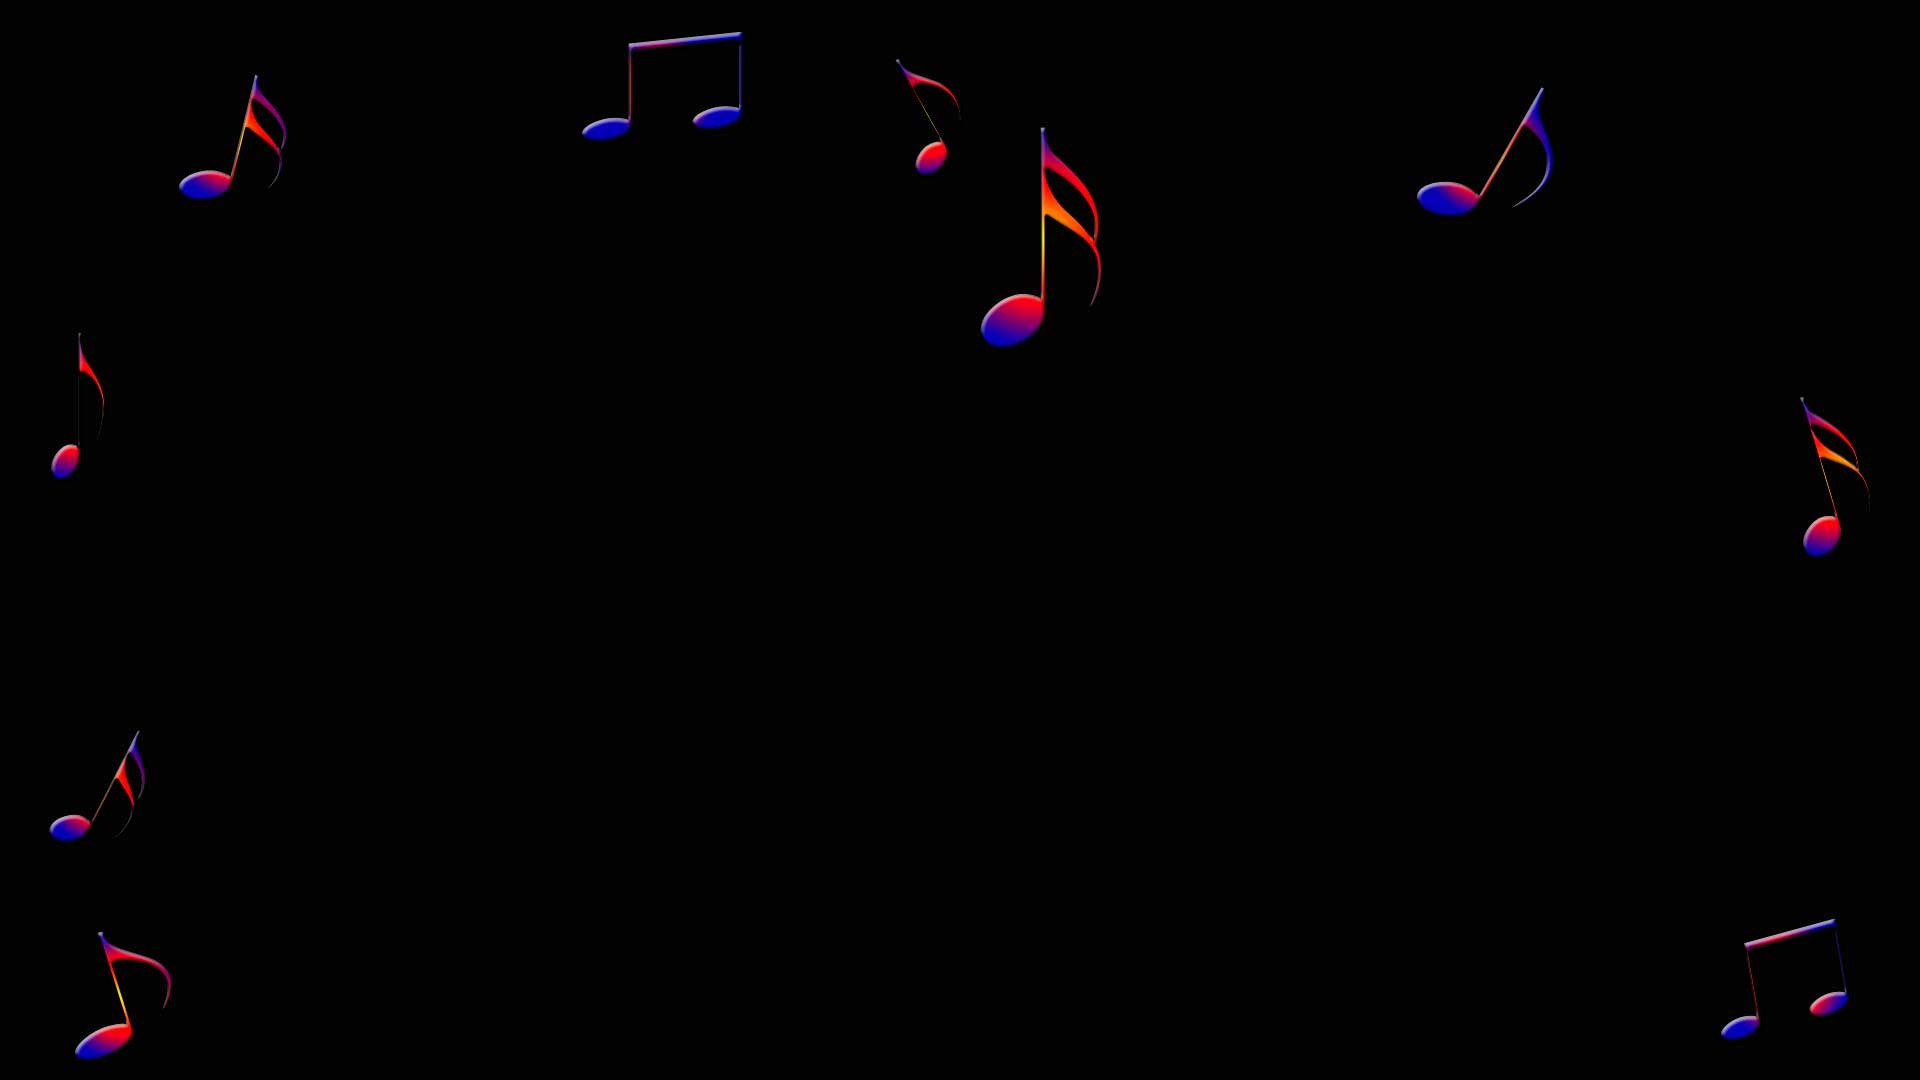 Music Wallpaper For Ipad: Music Notes Background ·① Download Free Awesome HD